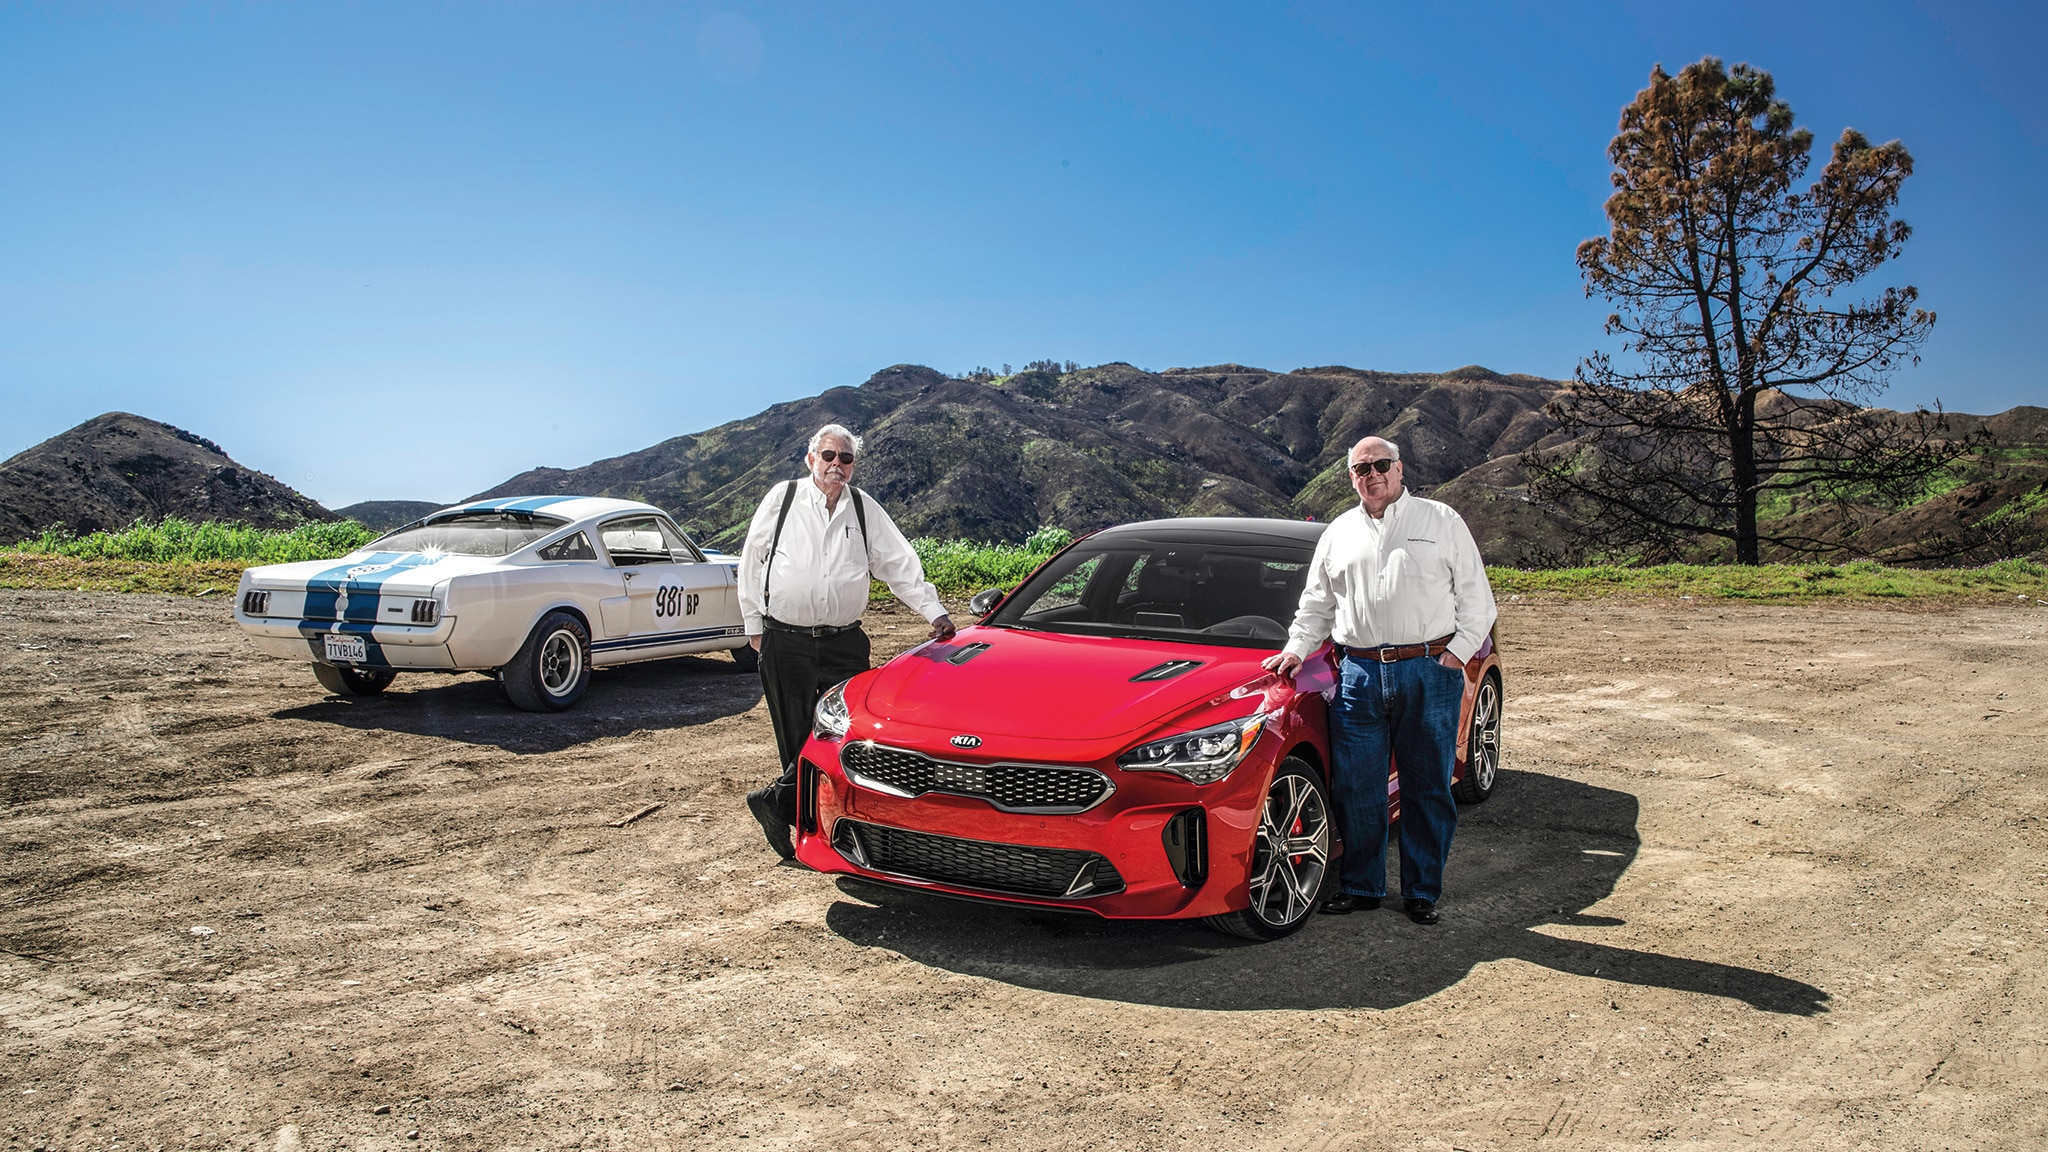 What Do Old-School Mustang Guys Think of the Kia Stinger? | Automobile Magazine